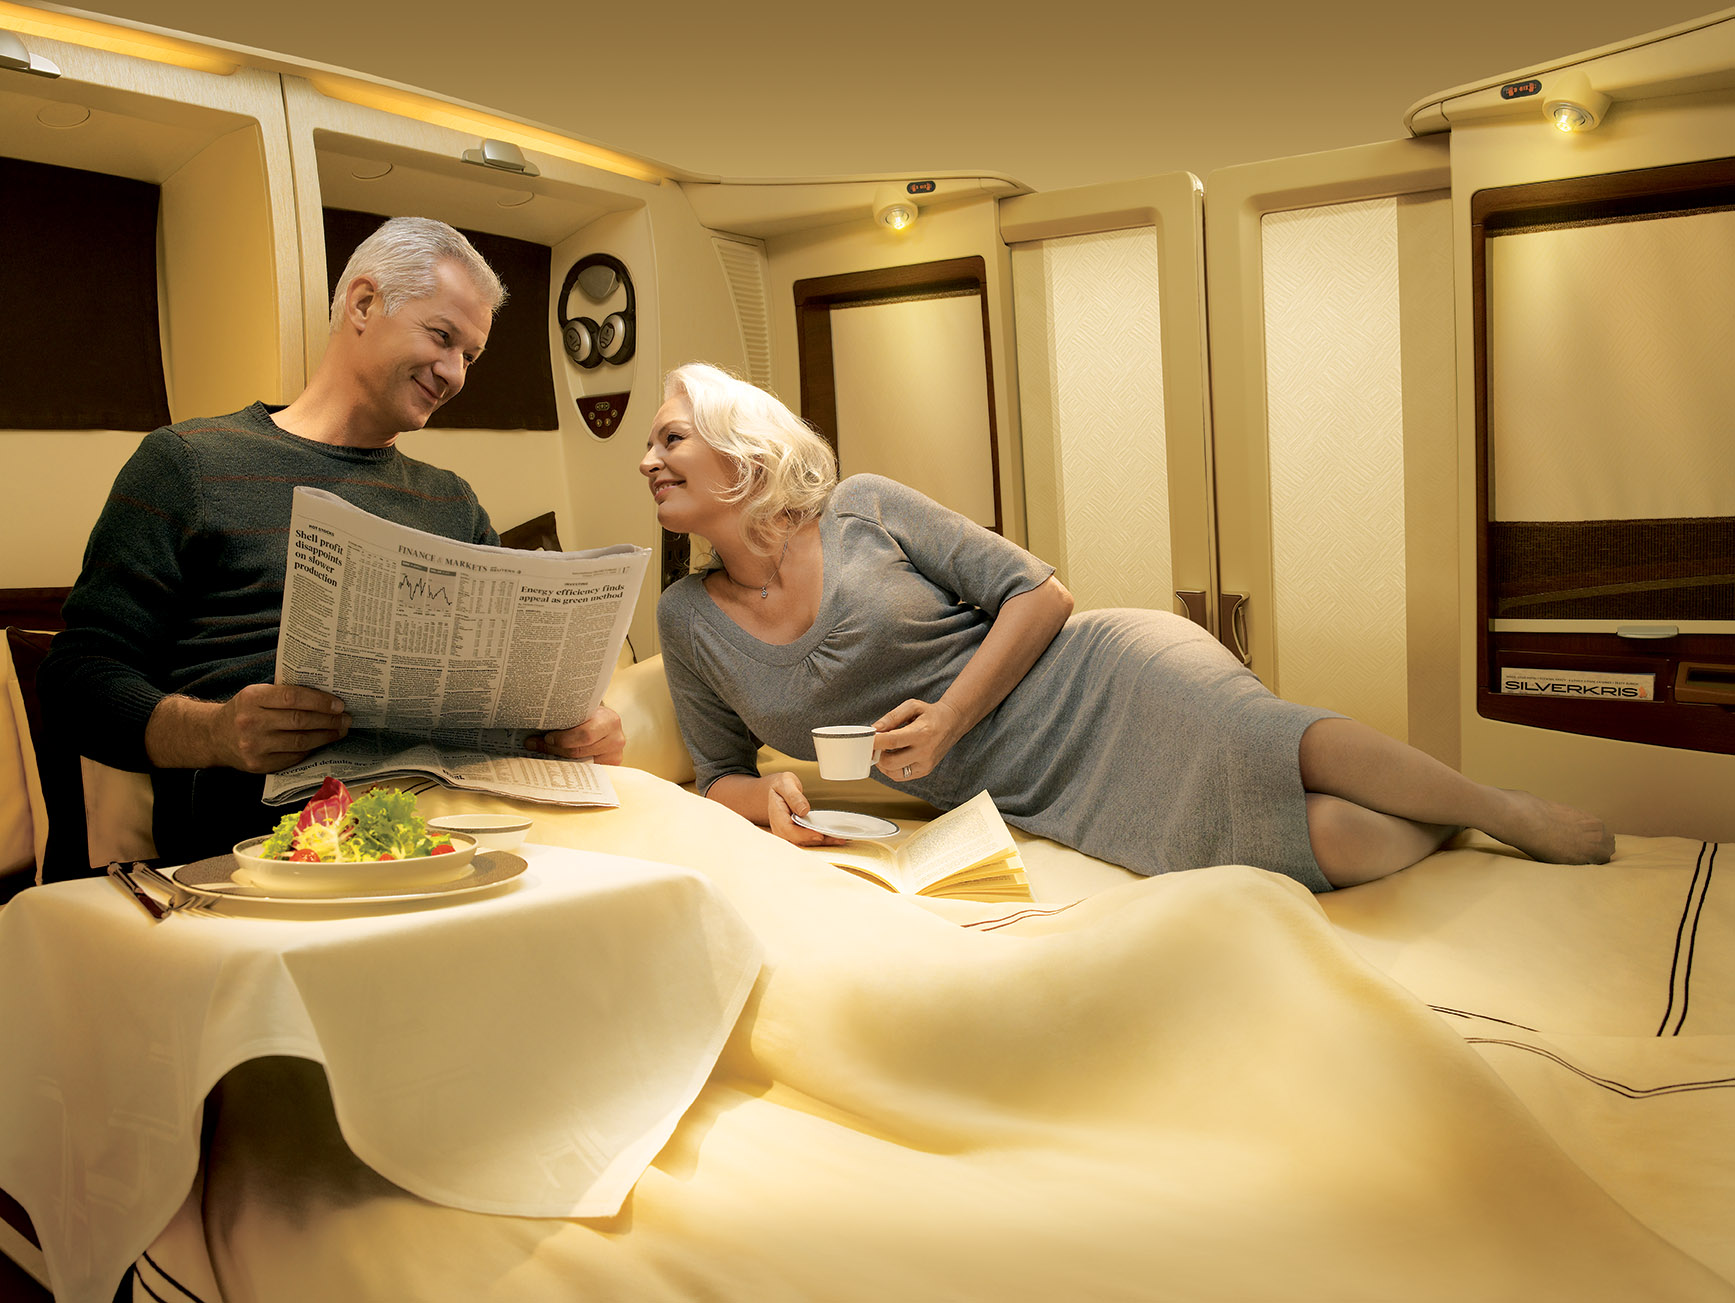 SingaporeAirlines_FirstClassSuite2_PhotoCreditSingaporeAirlines